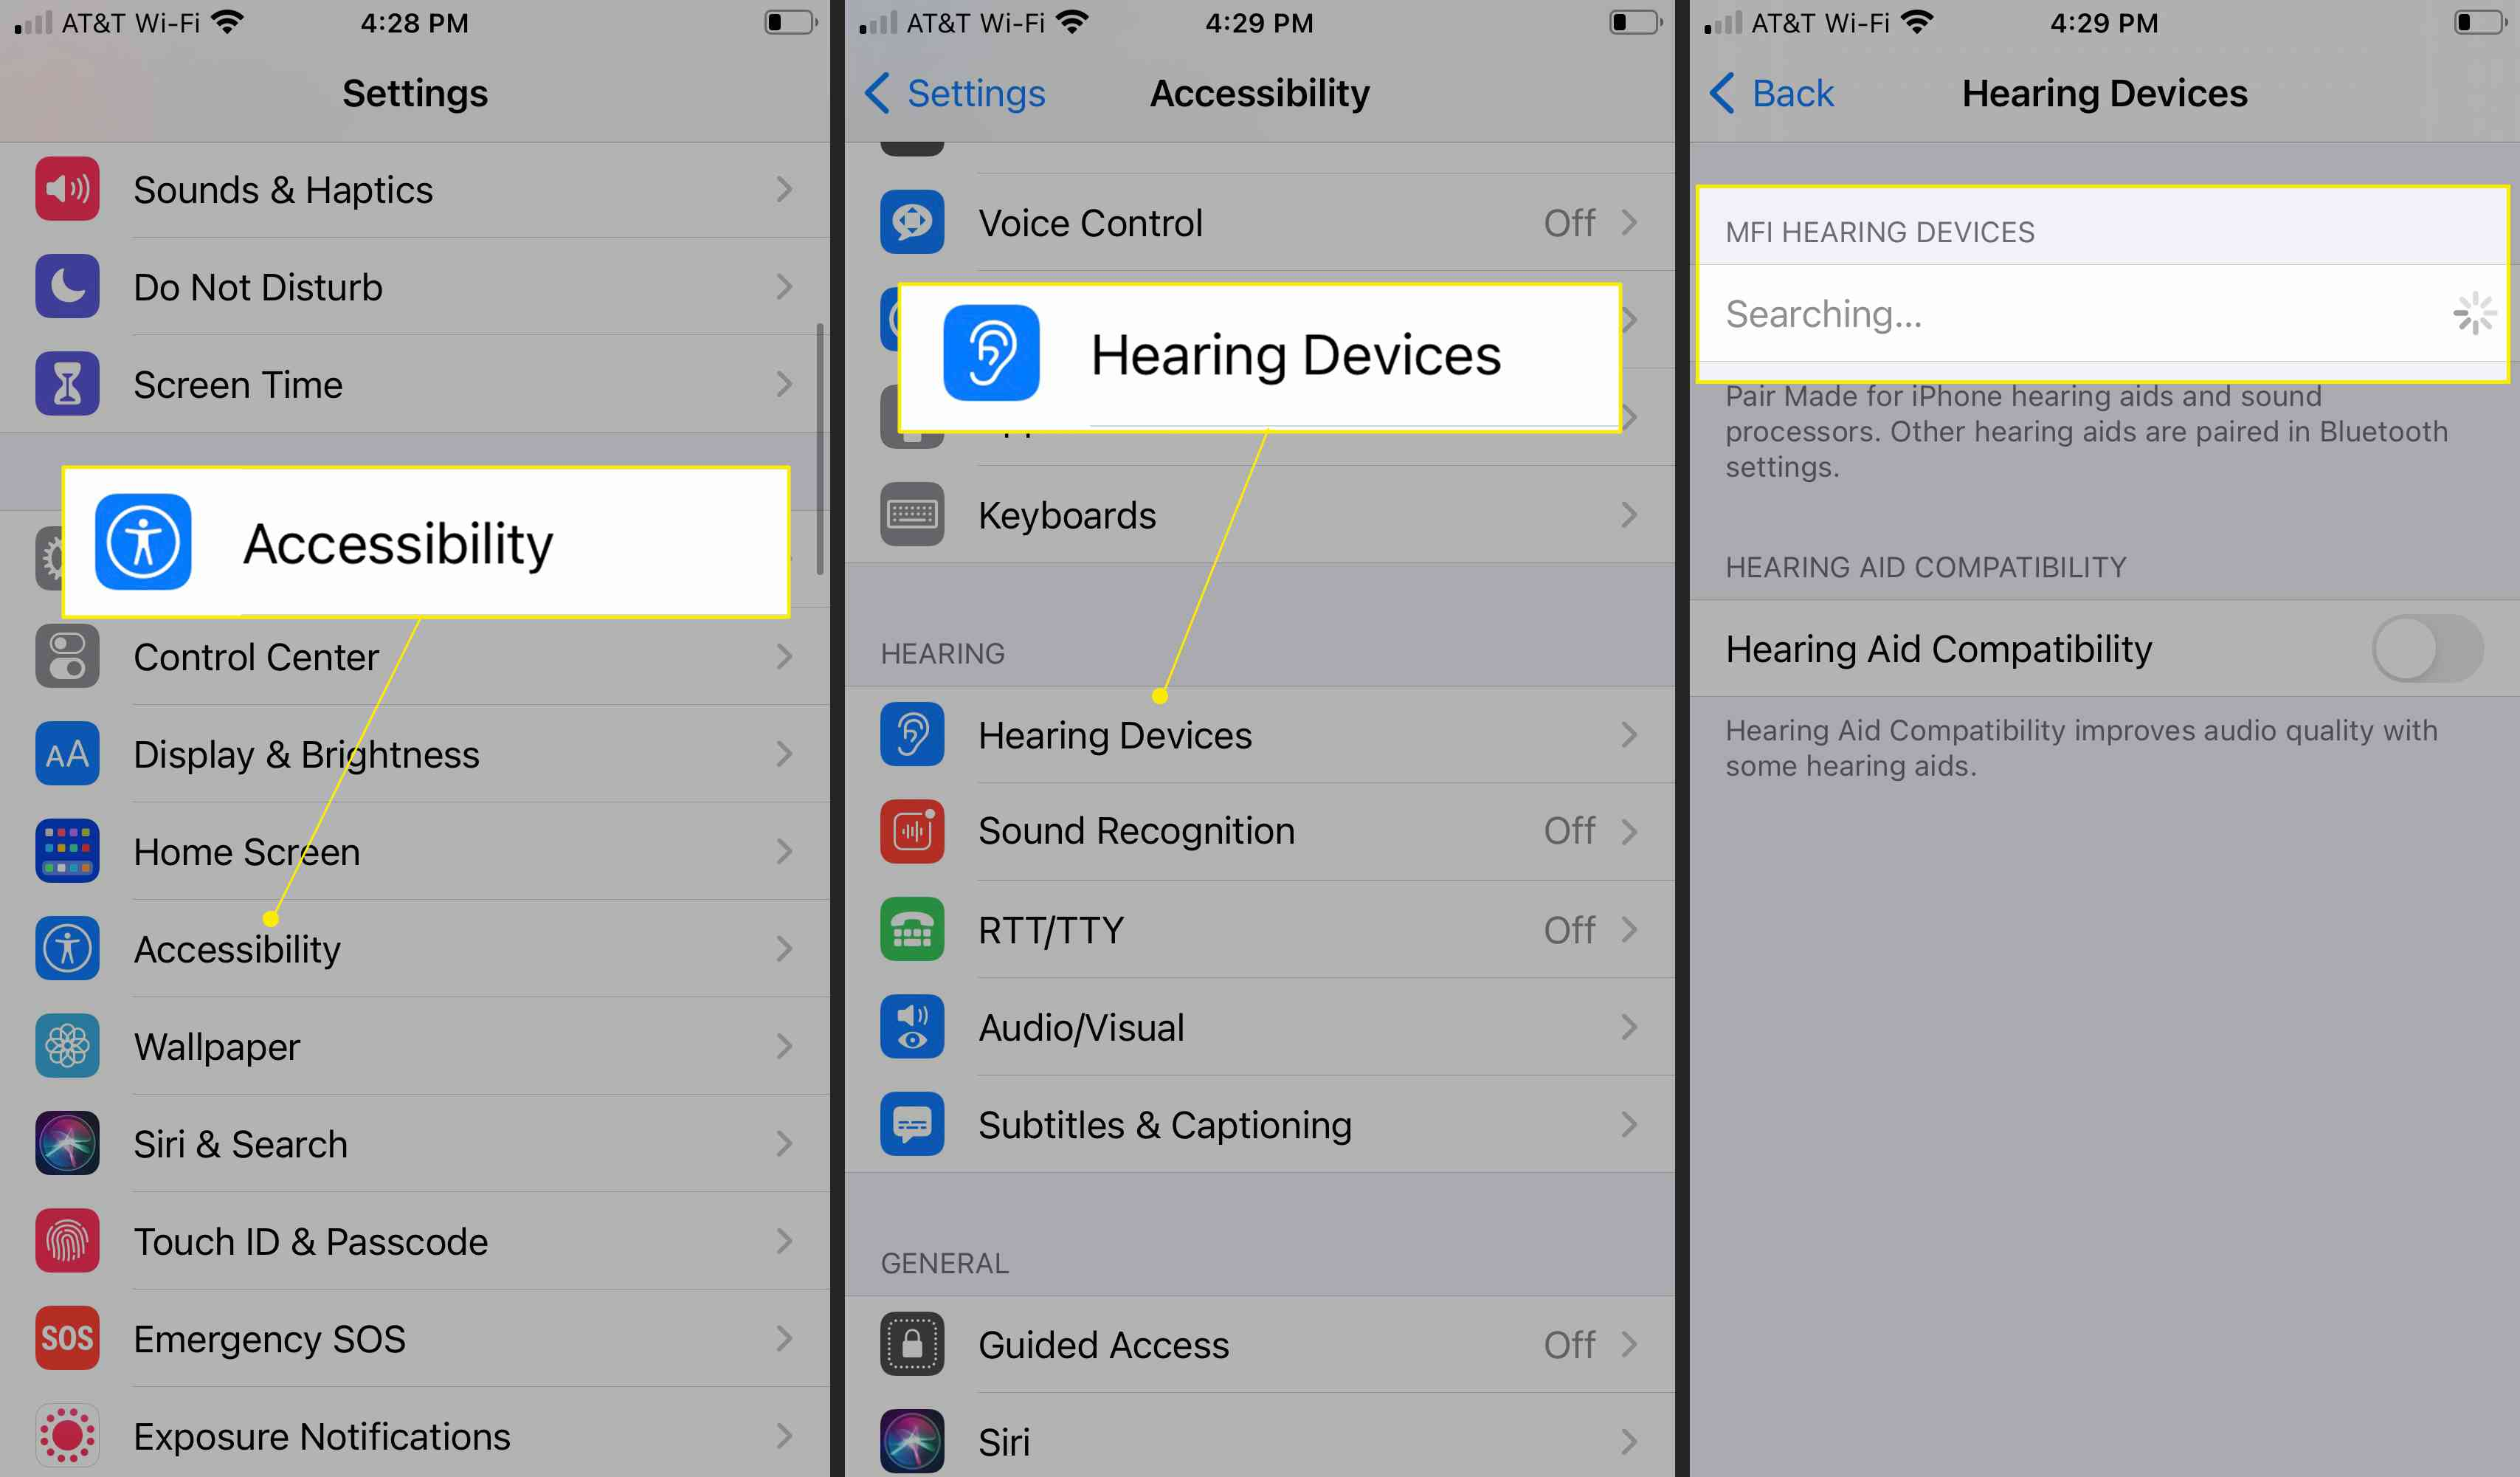 iPhone Settings with Accessibility, Hearing Devices, and MFI Hearing Devices highlighted